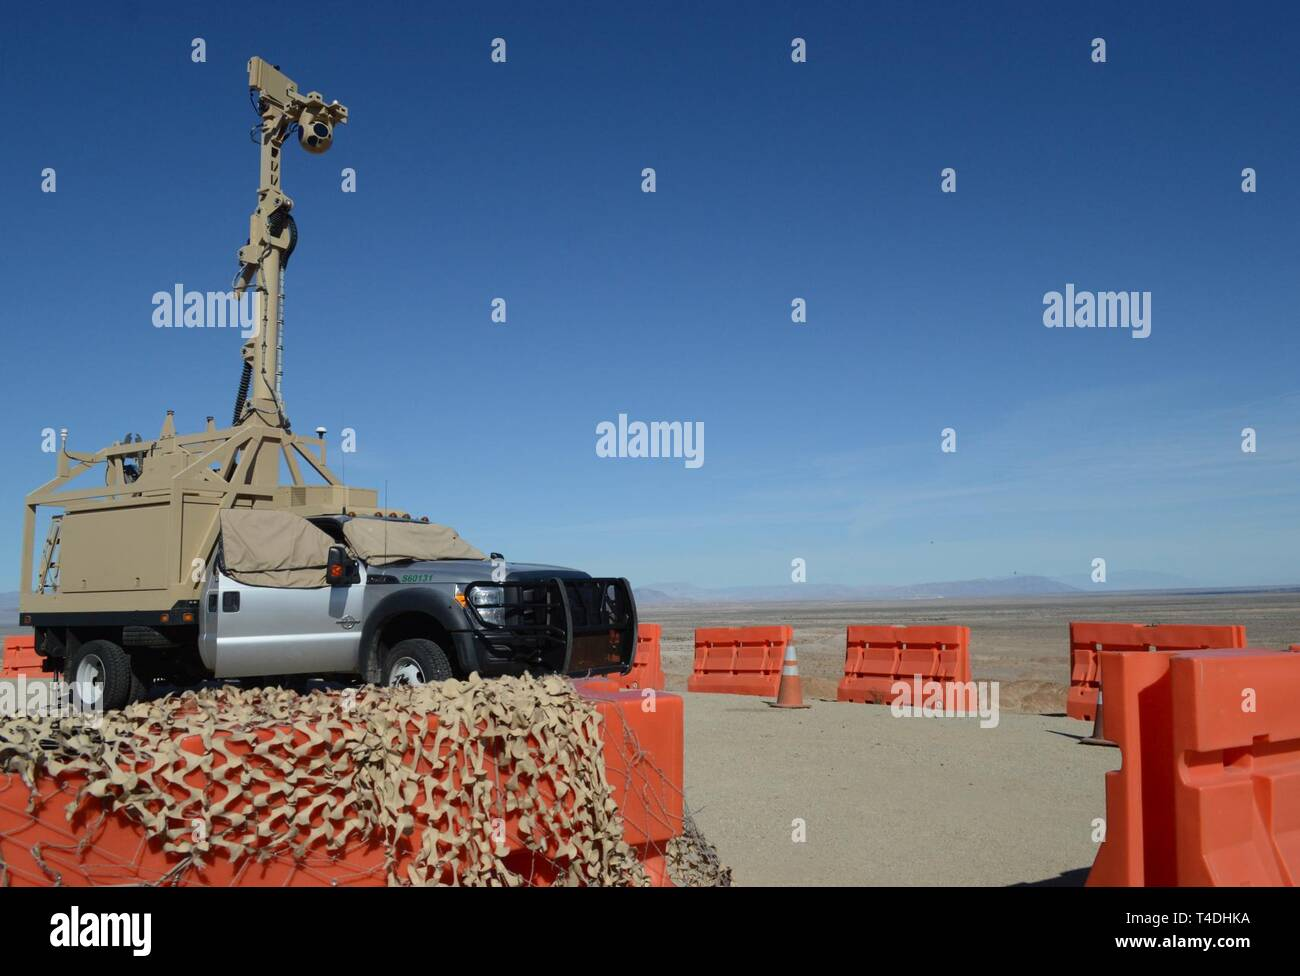 A Mobile Surveillance Camera parked on BP Hill in El Centro, Cali., March 28, 2019. The Department of Defense has deployed units across the Southwest Border at the request of U.S. Customs and Border Protection and is providing logistical, engineering, and force protection functions. Stock Photo